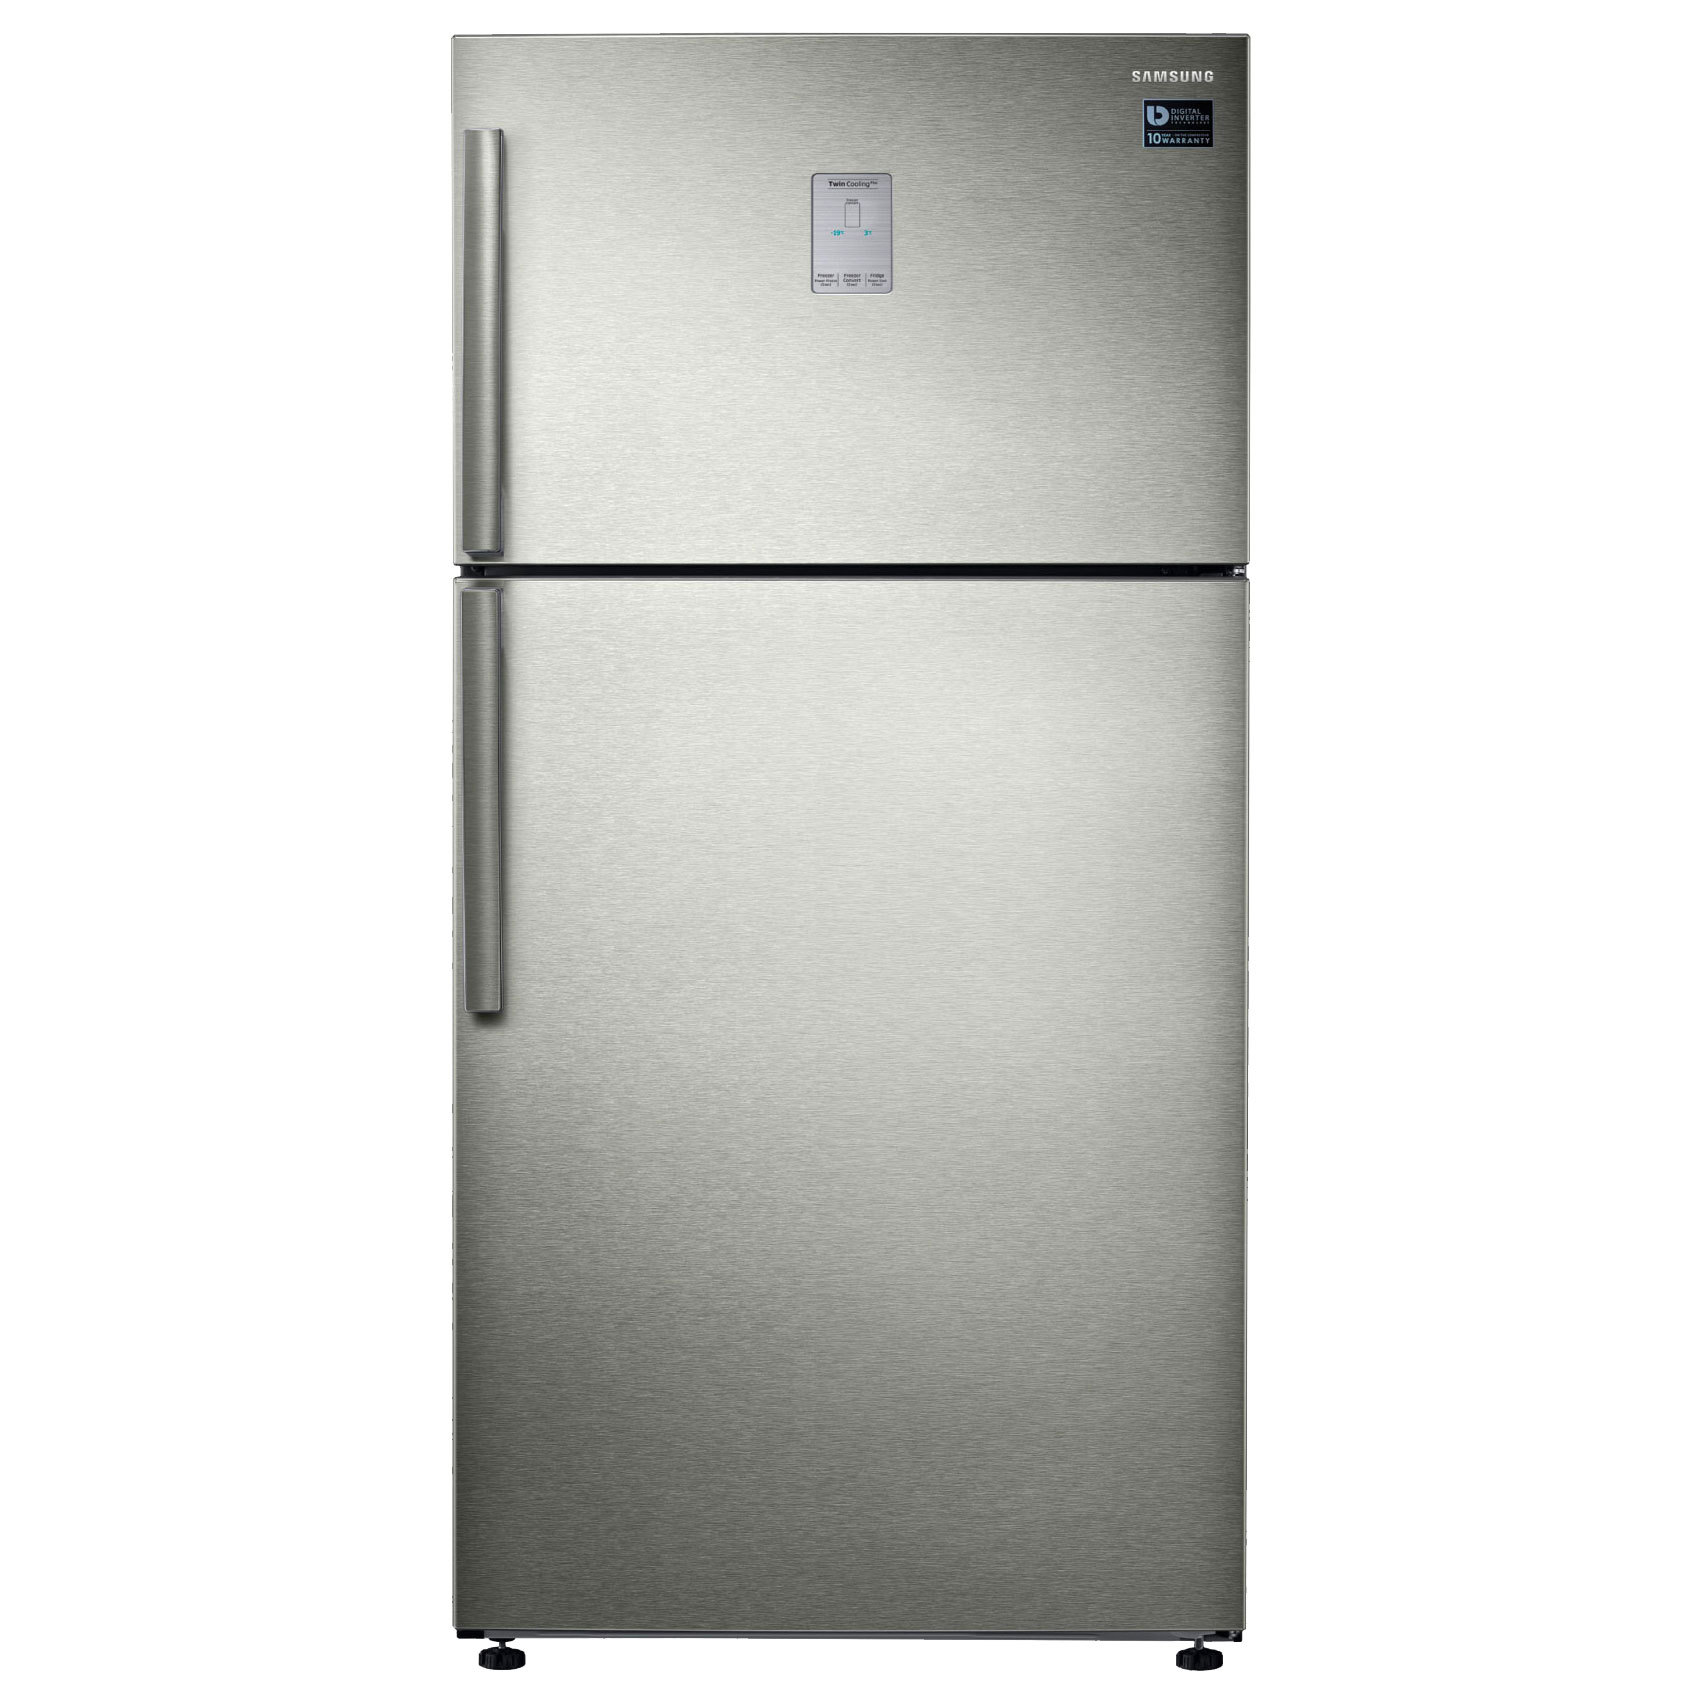 SAMSUNG FRIDGE RT72K6360SP 720L